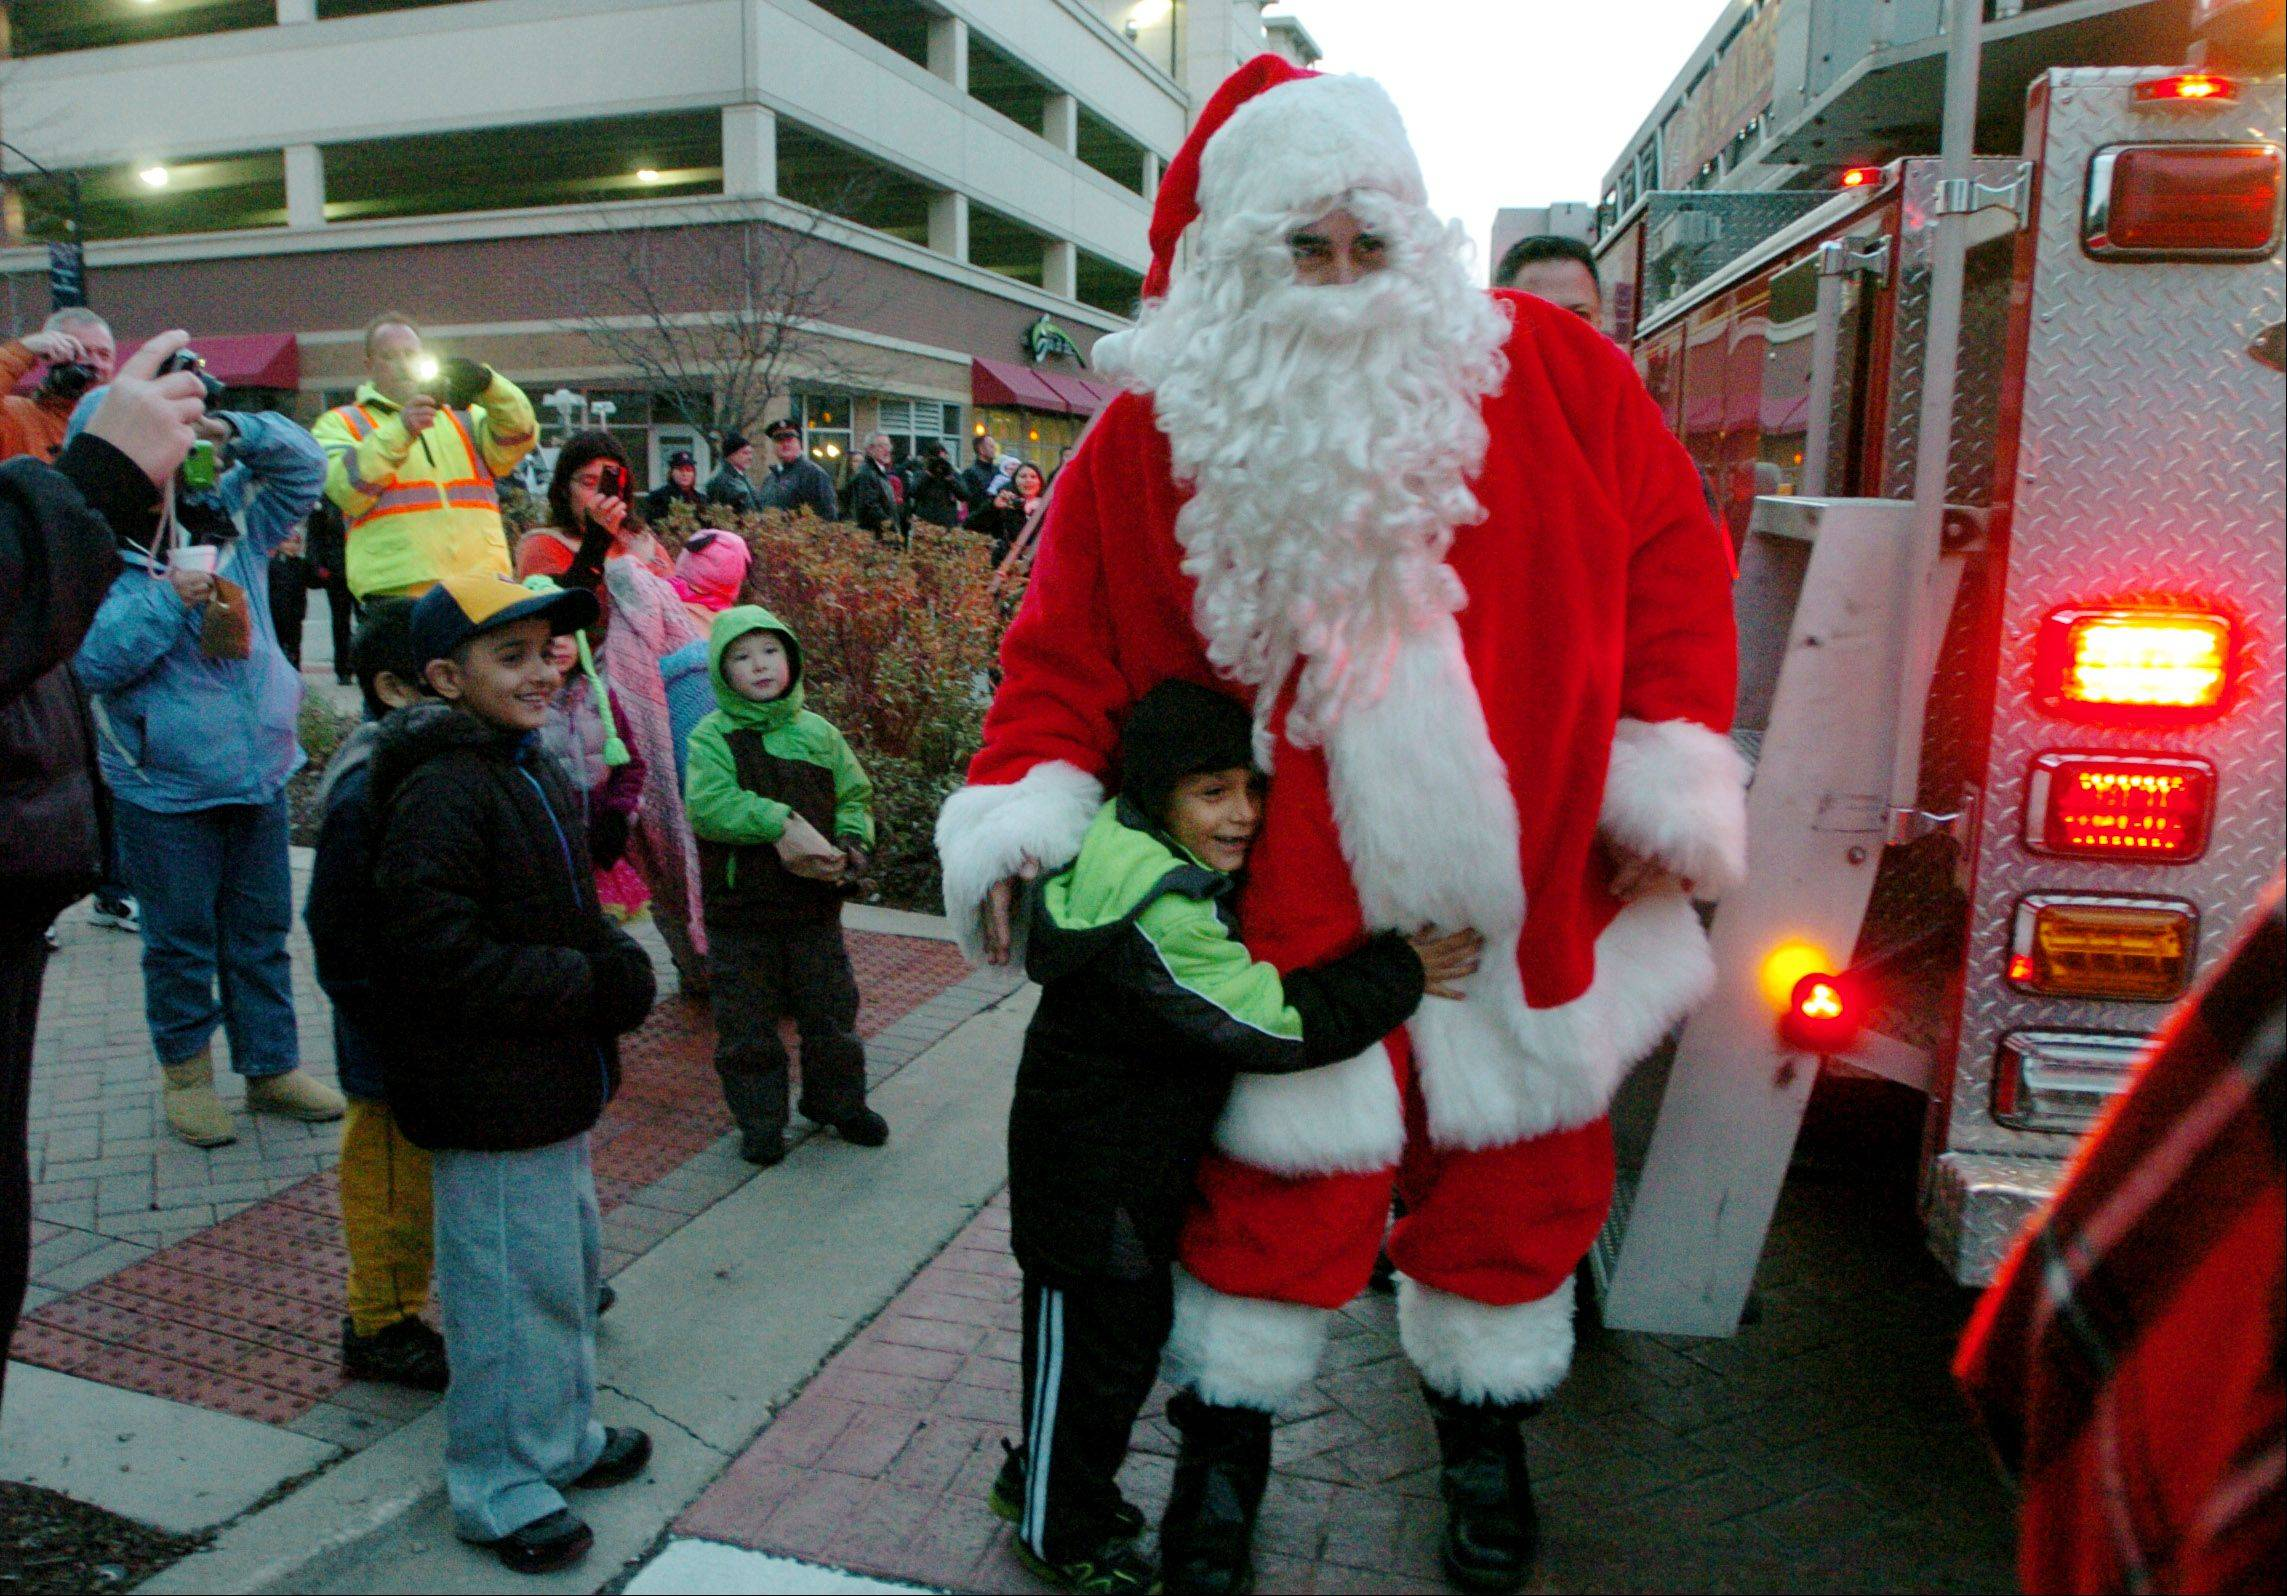 6-year-old Andrew Hernandez of Orchard School is one of the first kids to greet Santa after arriving on a fire truck during the Des Plaines annual Christmas tree lighting event in Metropolitan Square.